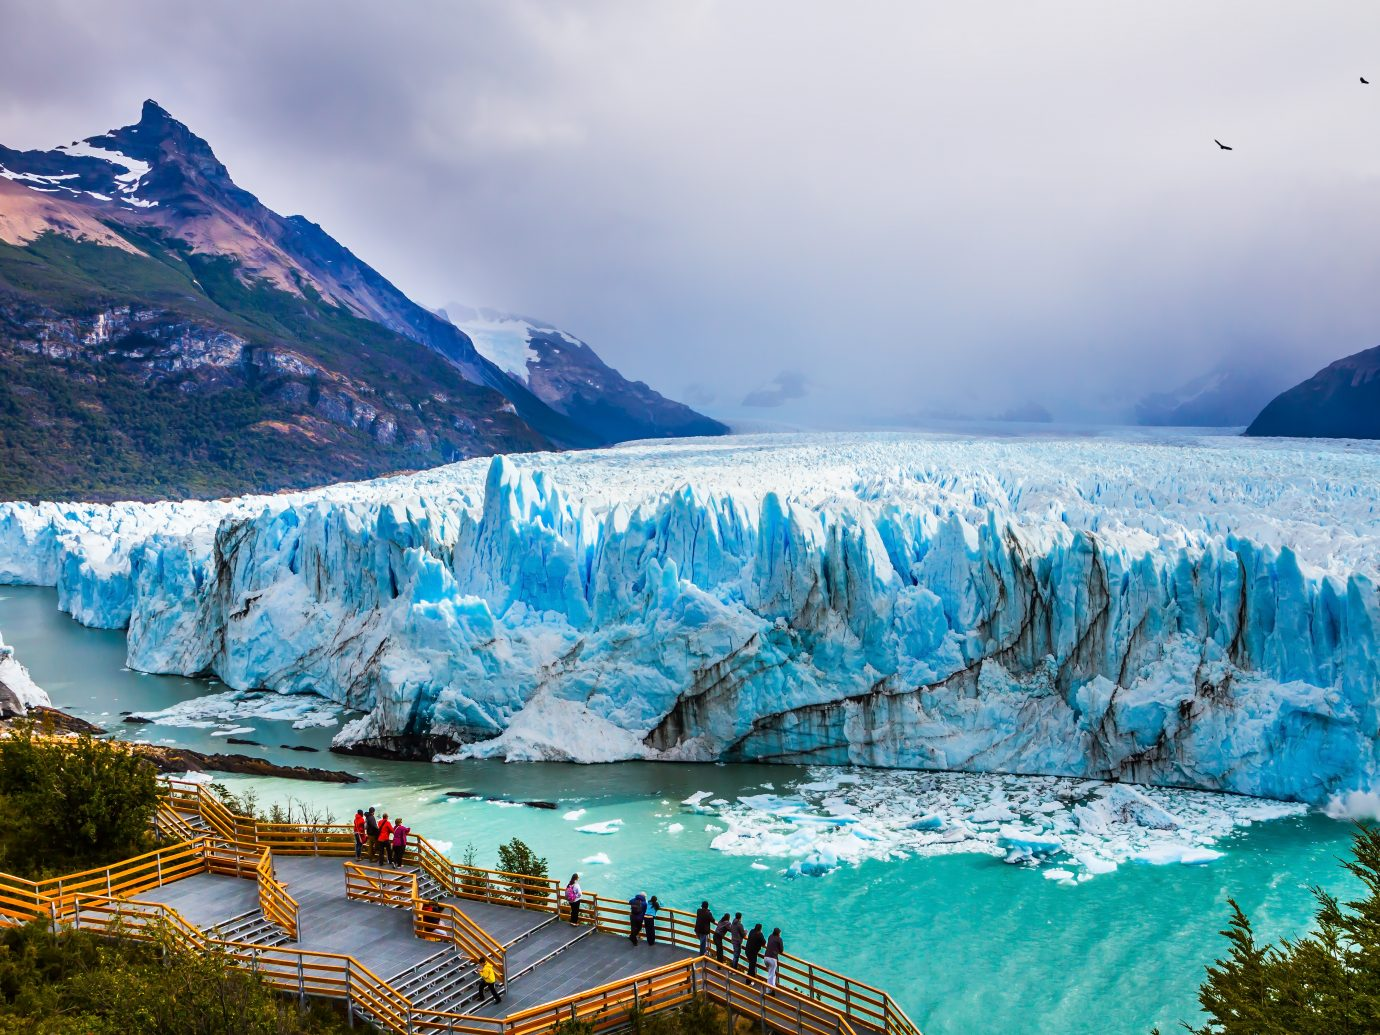 Grandiose glacier Perito Moreno in the Argentine part of Patagonia.